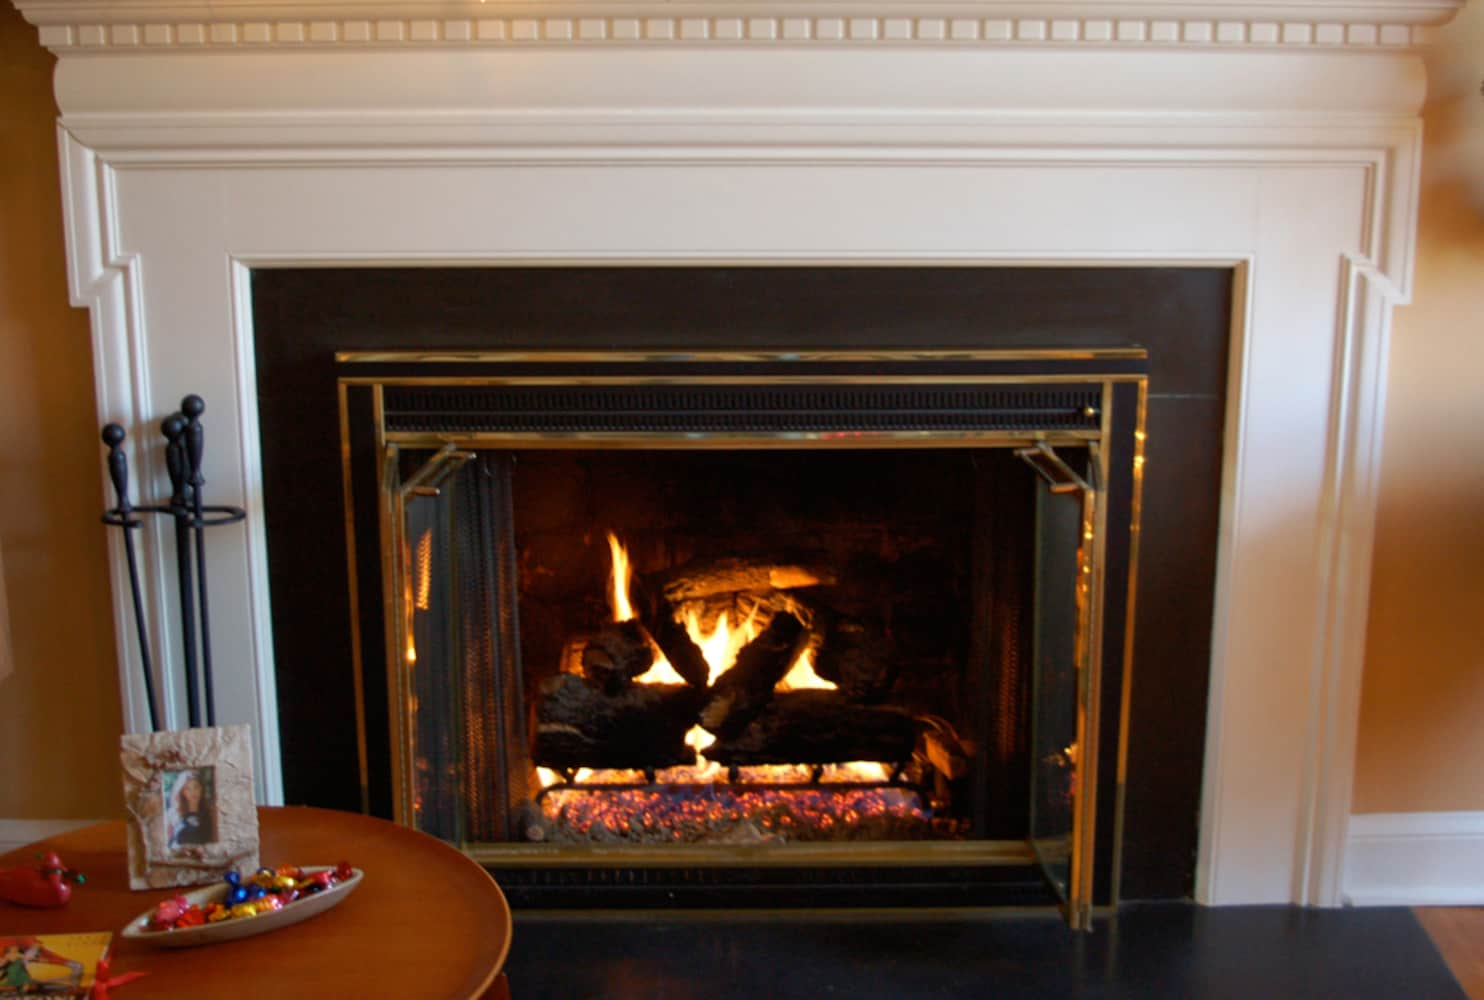 Convert Fireplace To Gas Burning How To Options For Converting A Fireplace To Natural Gas The